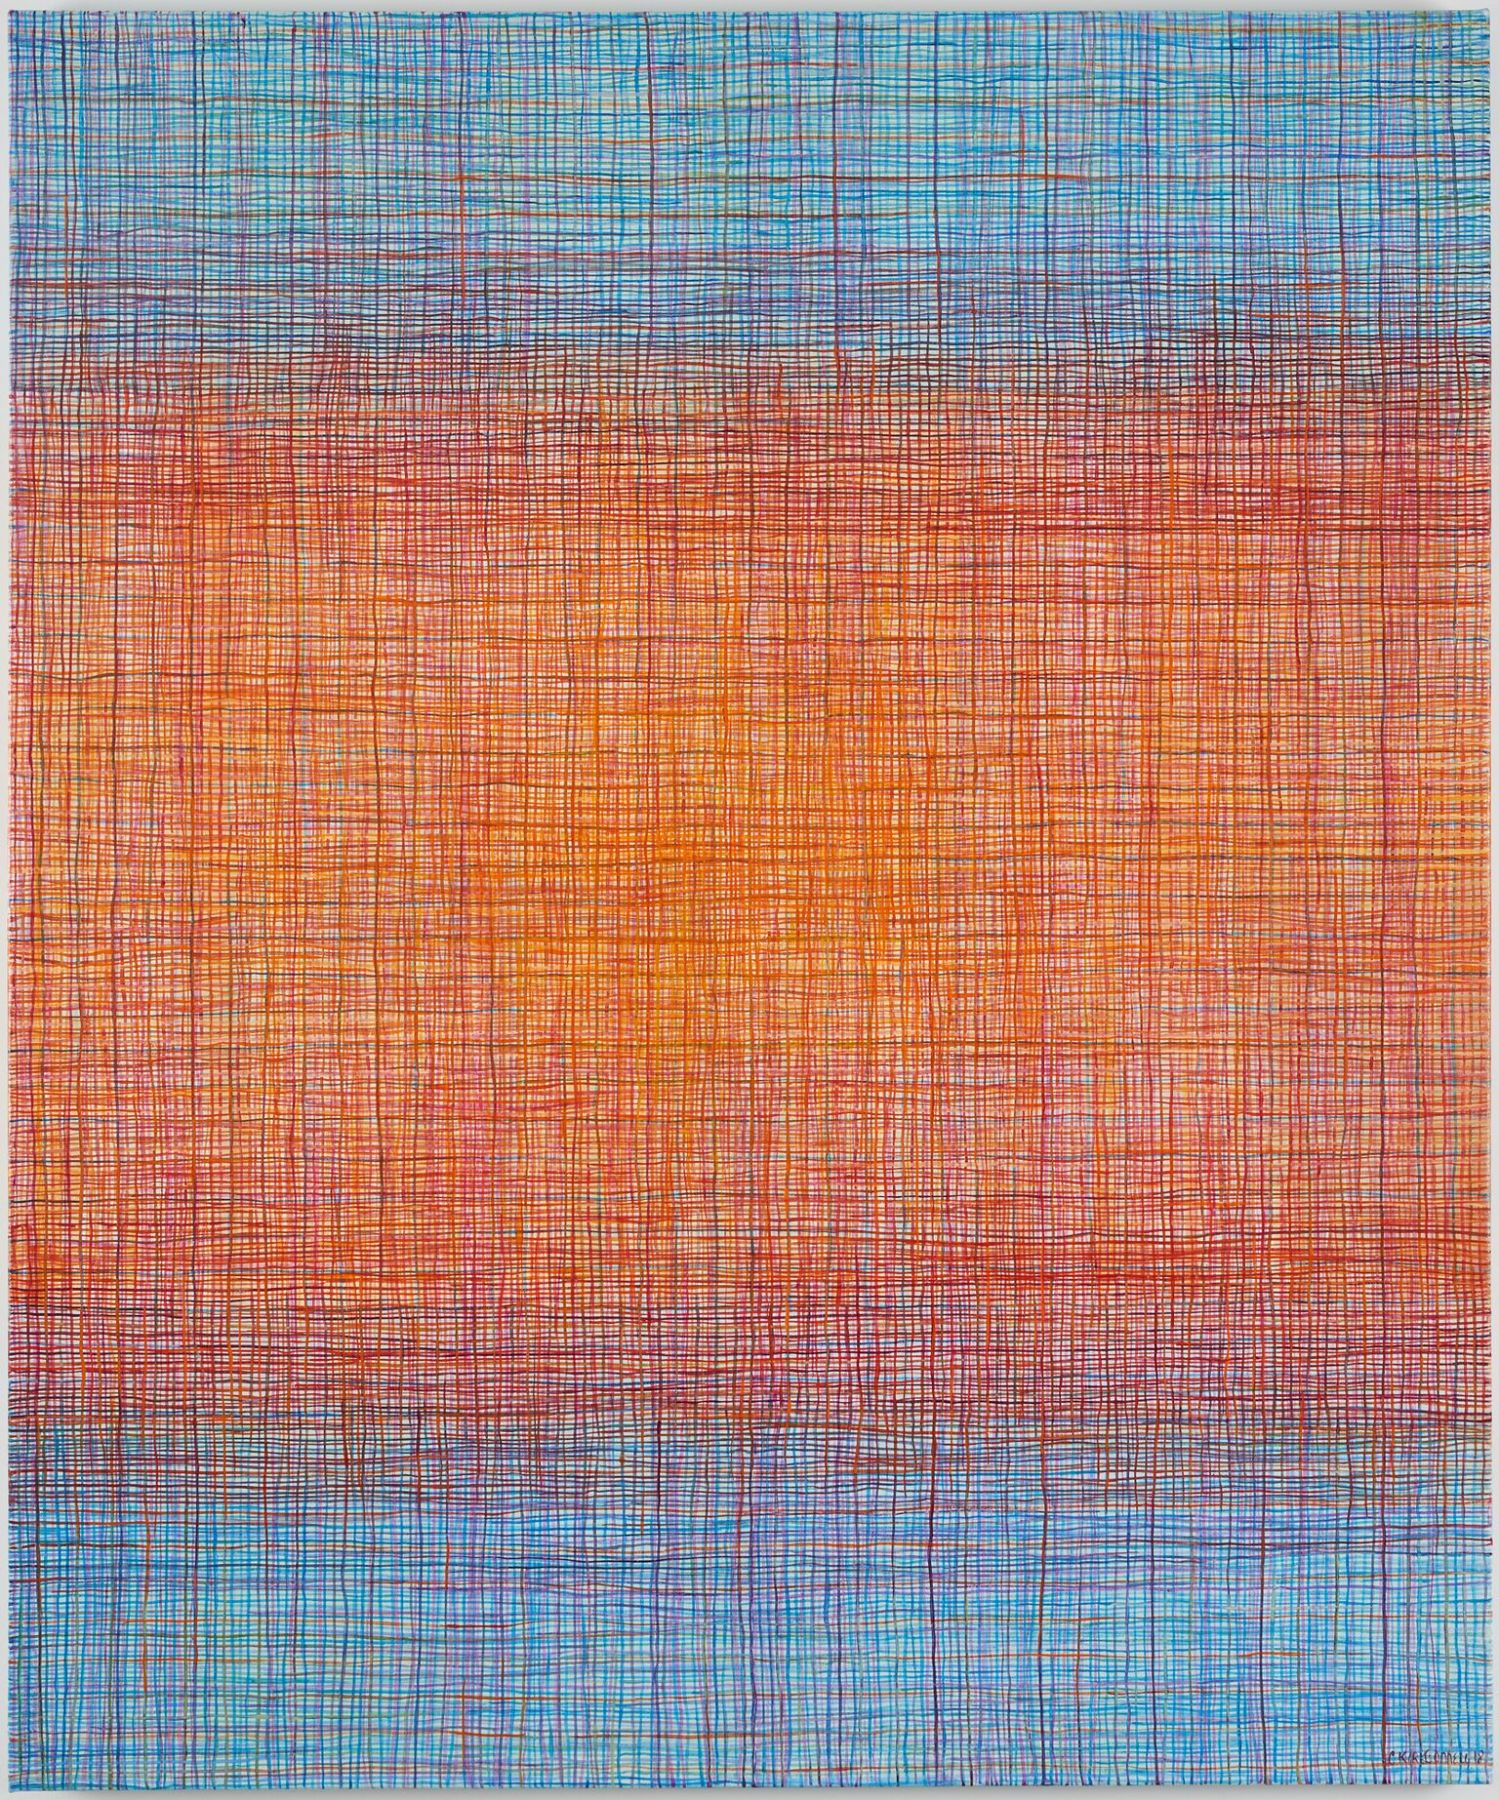 Clare Kirkconnell Warp and Weft, 2018